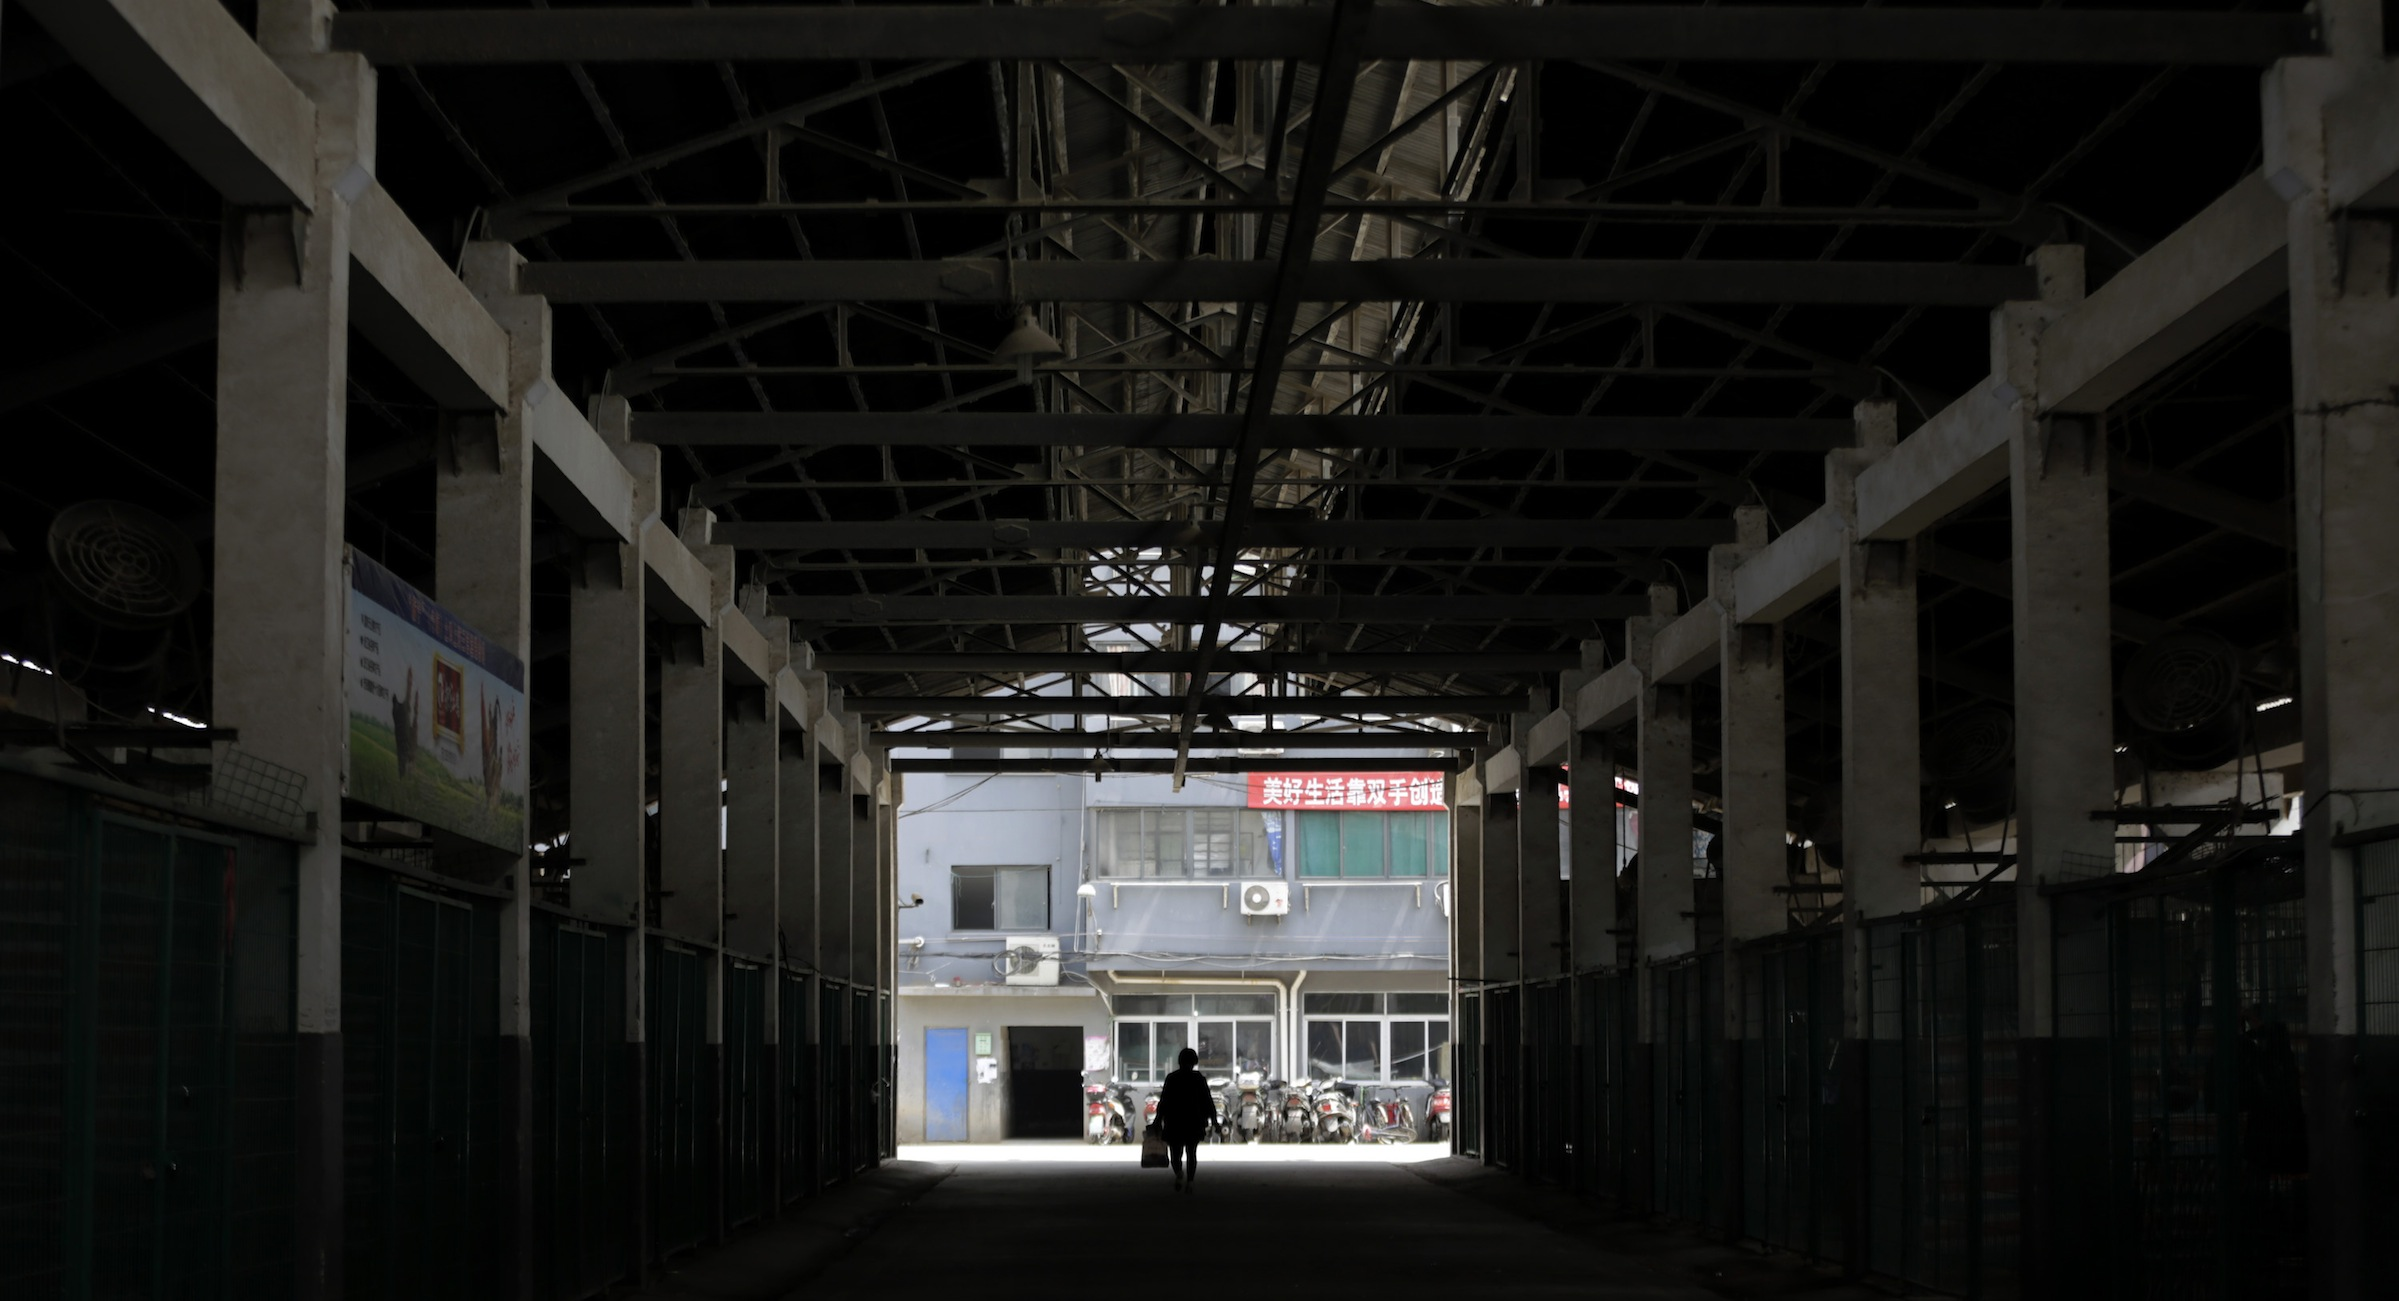 A worker walks though an empty live poultry wholesale market in Shanghai, China Wednesday, April 10, 2013. China says two more people have died of a new strain of bird flu, bringing the death toll to nine. Shanghai has suspended sales of live poultry. (AP Photo/Eugene Hoshiko)